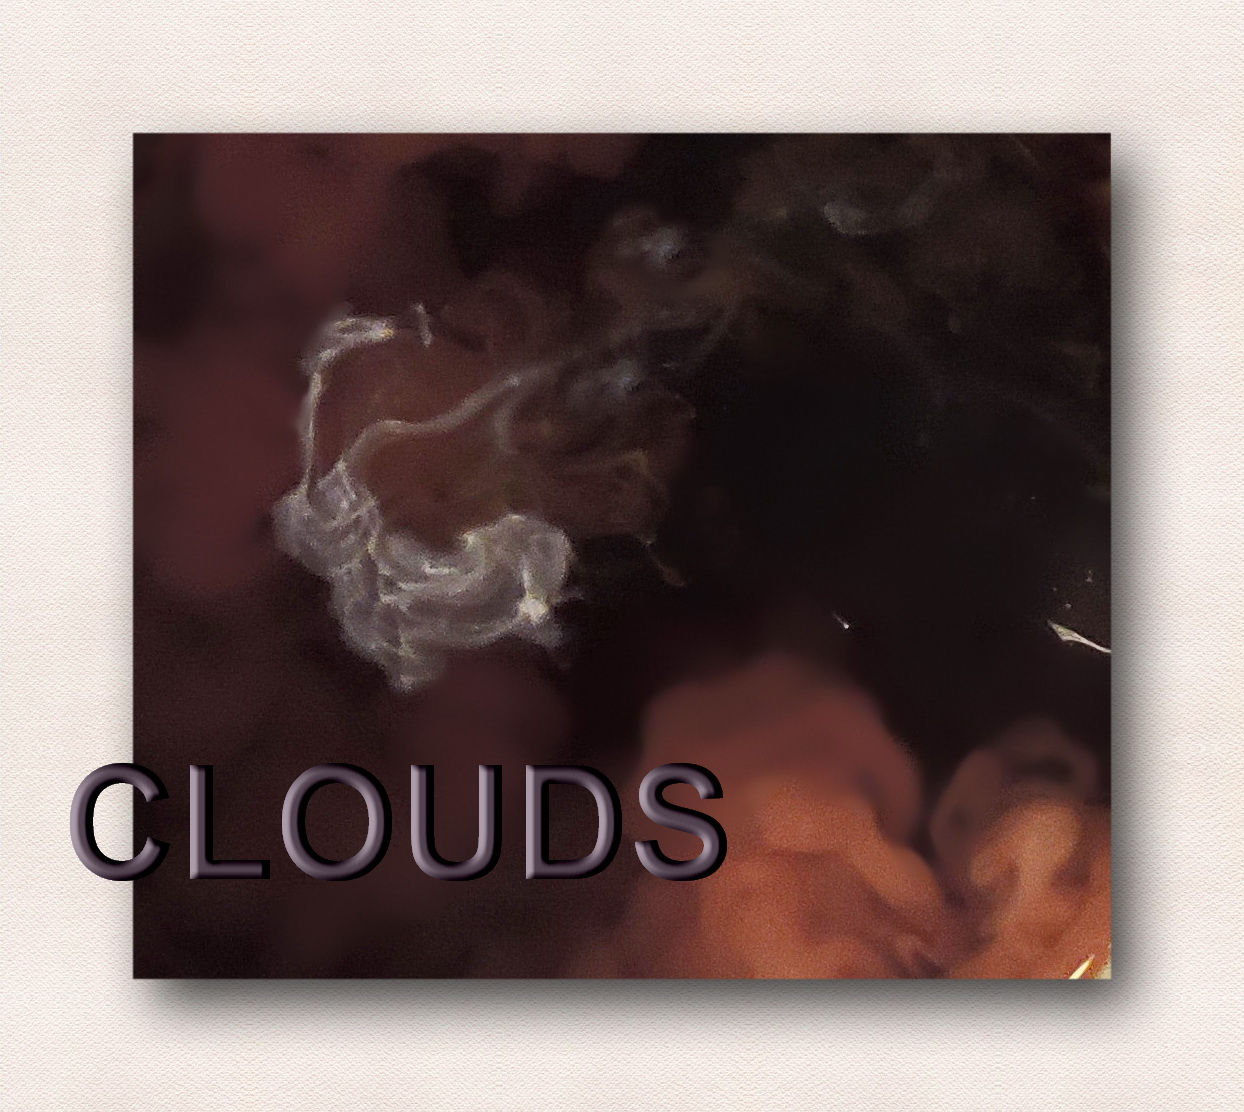 """© Clouds (in my coffee). Photograph by Mina Thevenin. Photography World article, """"The Language of Clouds"""" @ photographyworld.org"""